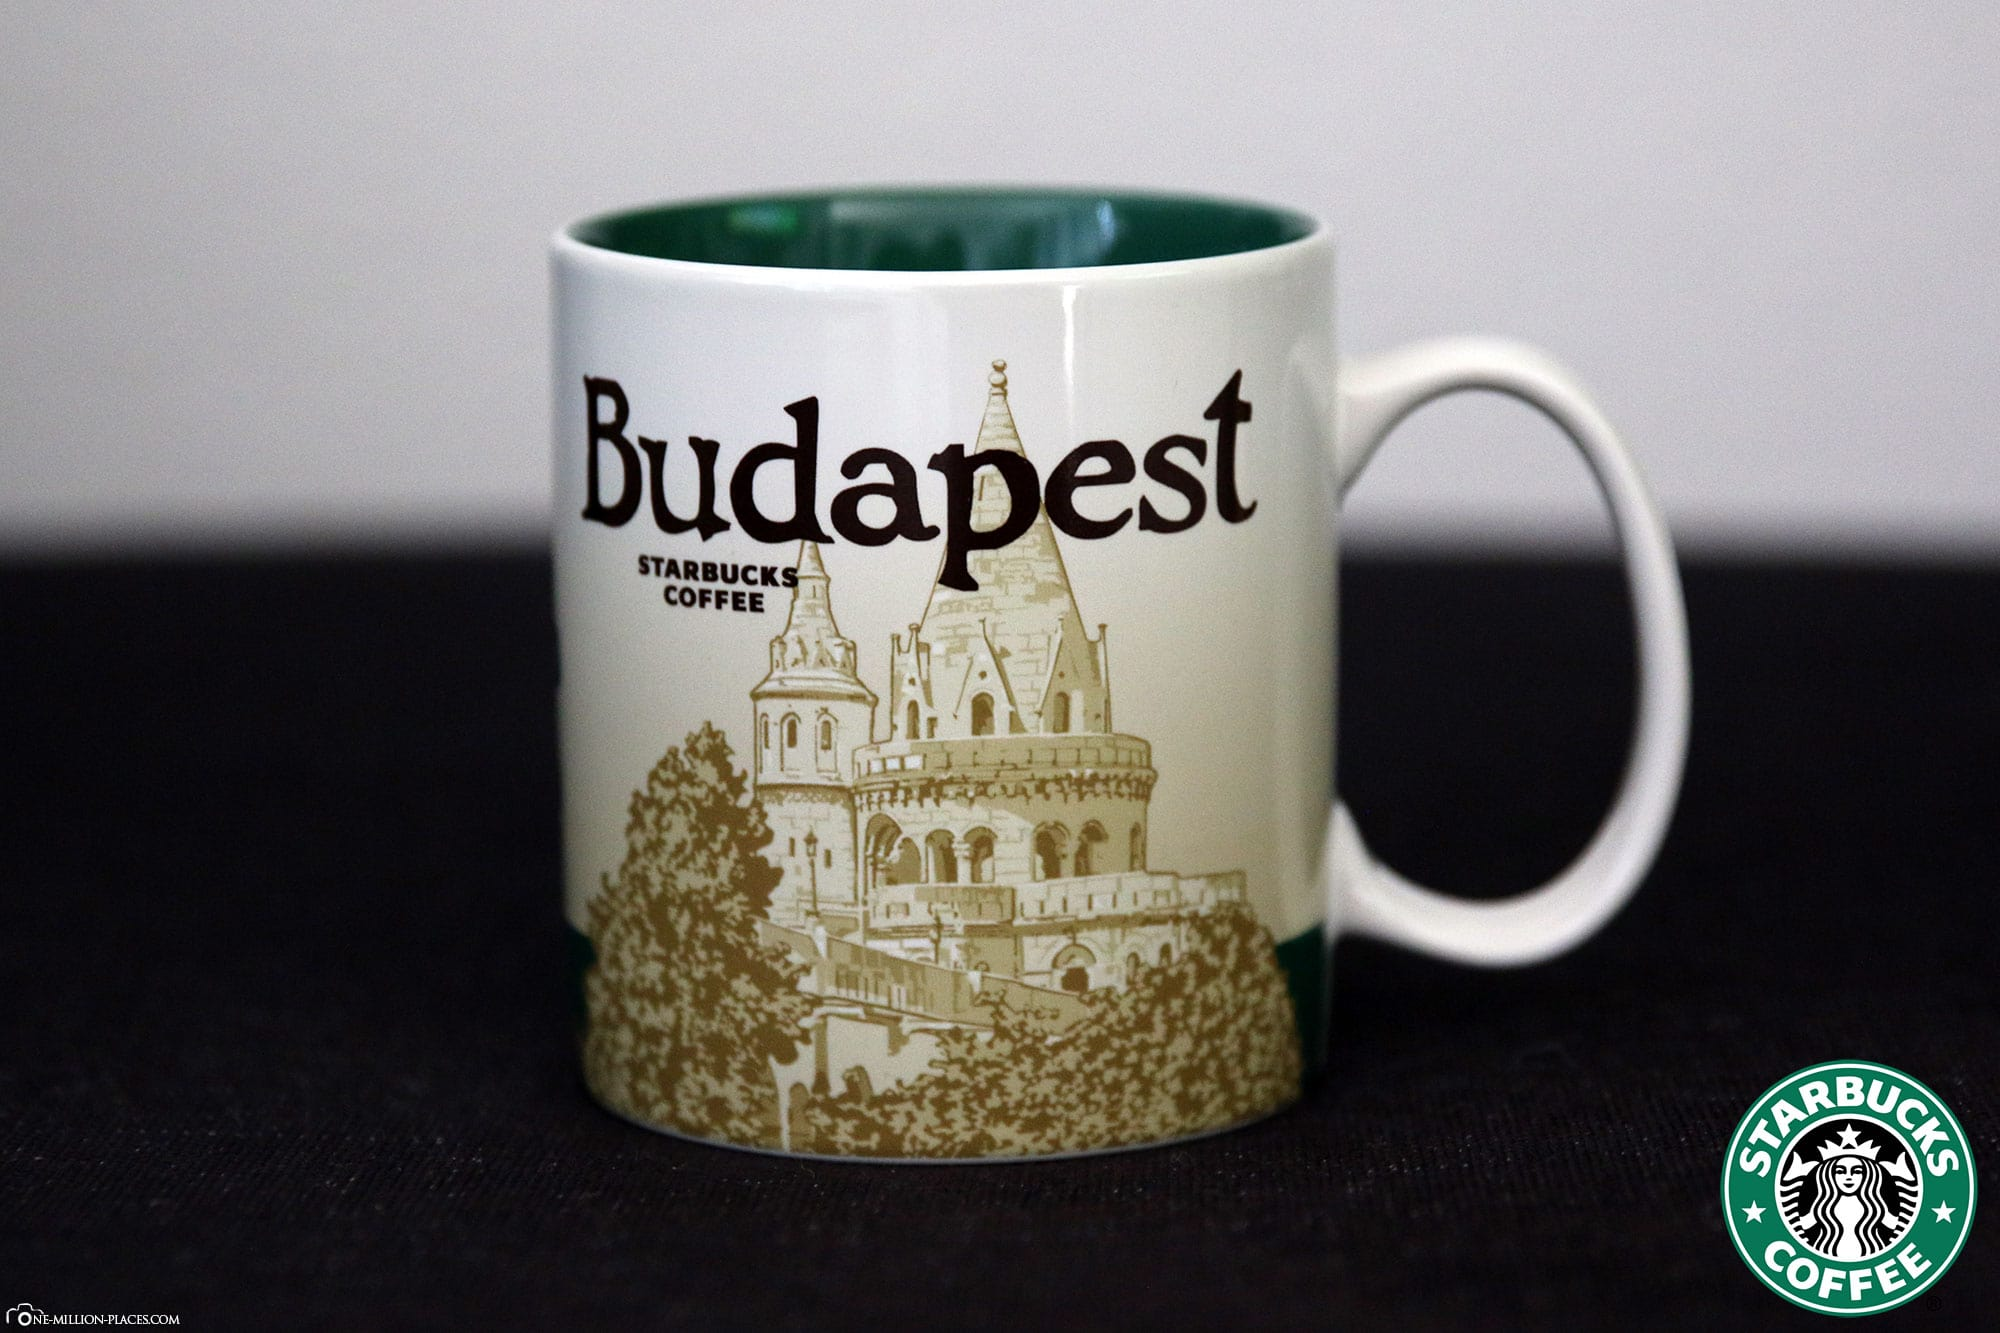 Budapest, Starbucks Cup, Global Icon Series, City Mugs, Collection, Hungary, Travelreport